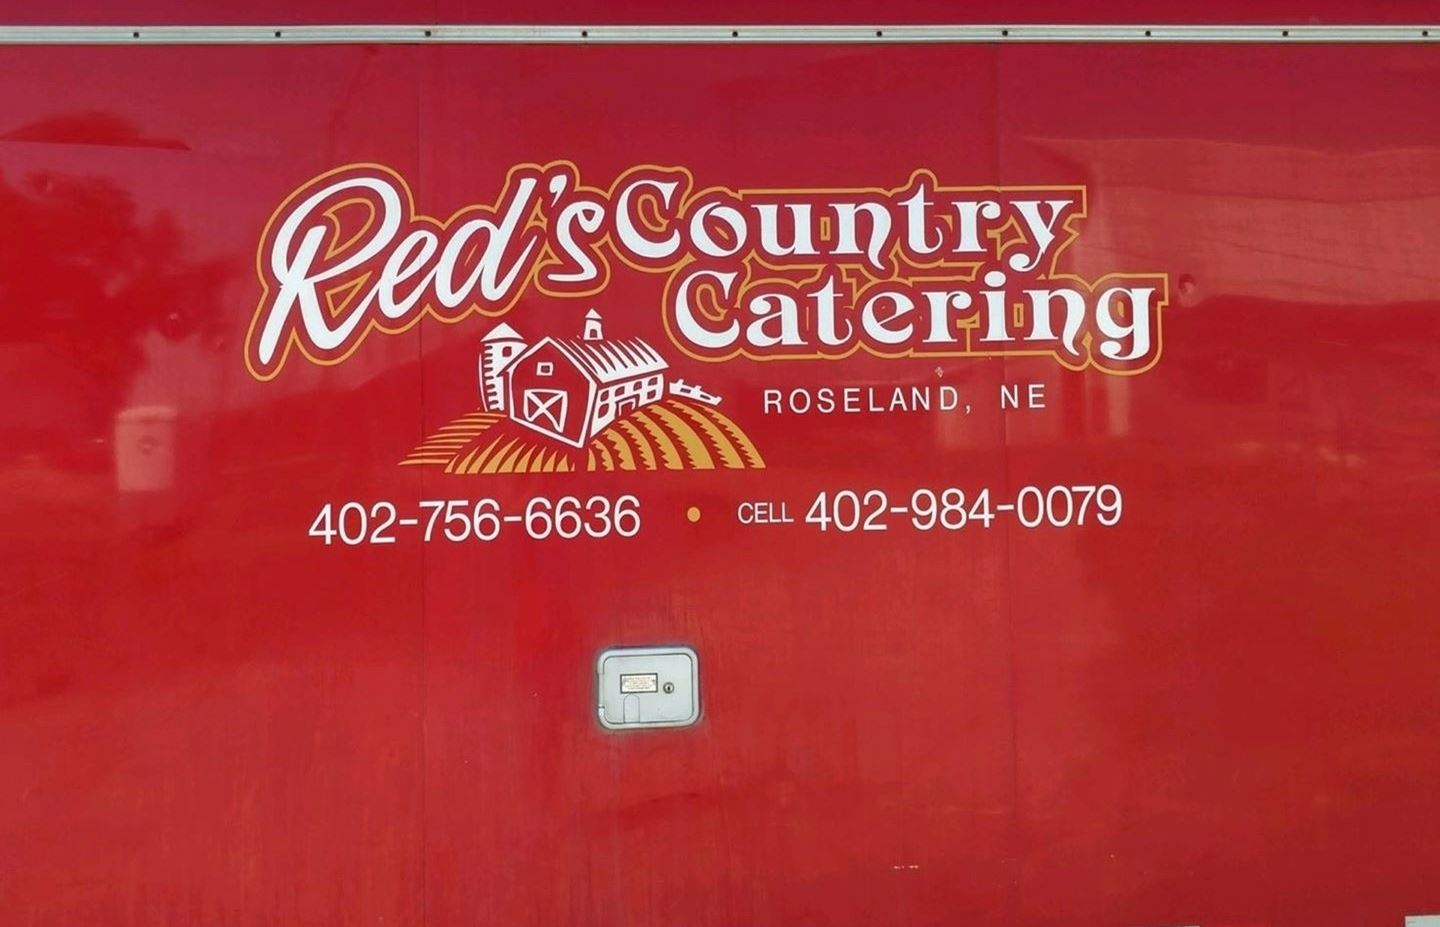 Reds Country Catering